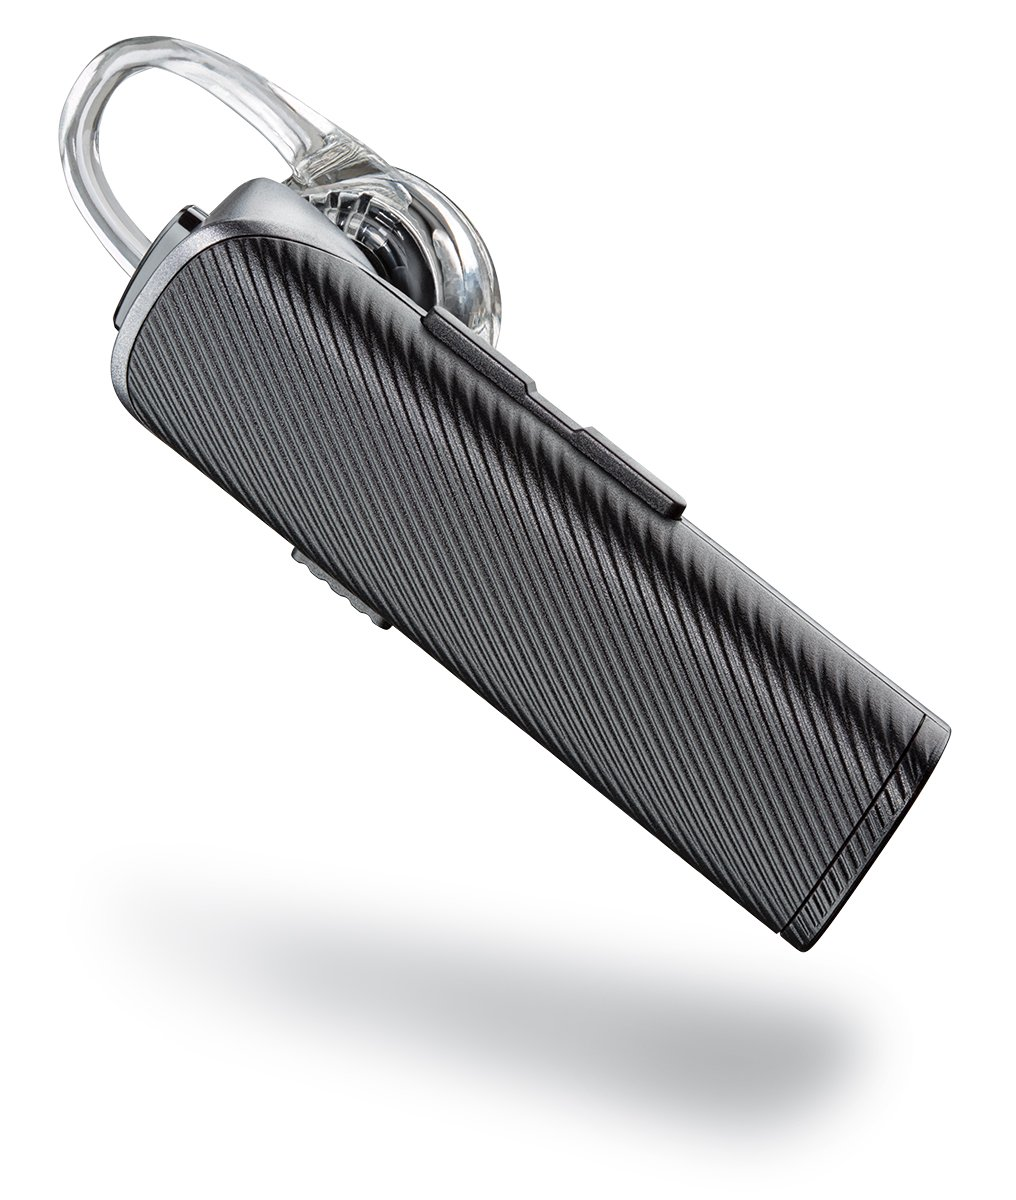 Plantronics Explorer 110 Bluetooth Wireless Headset - Retail Packaging by Plantronics